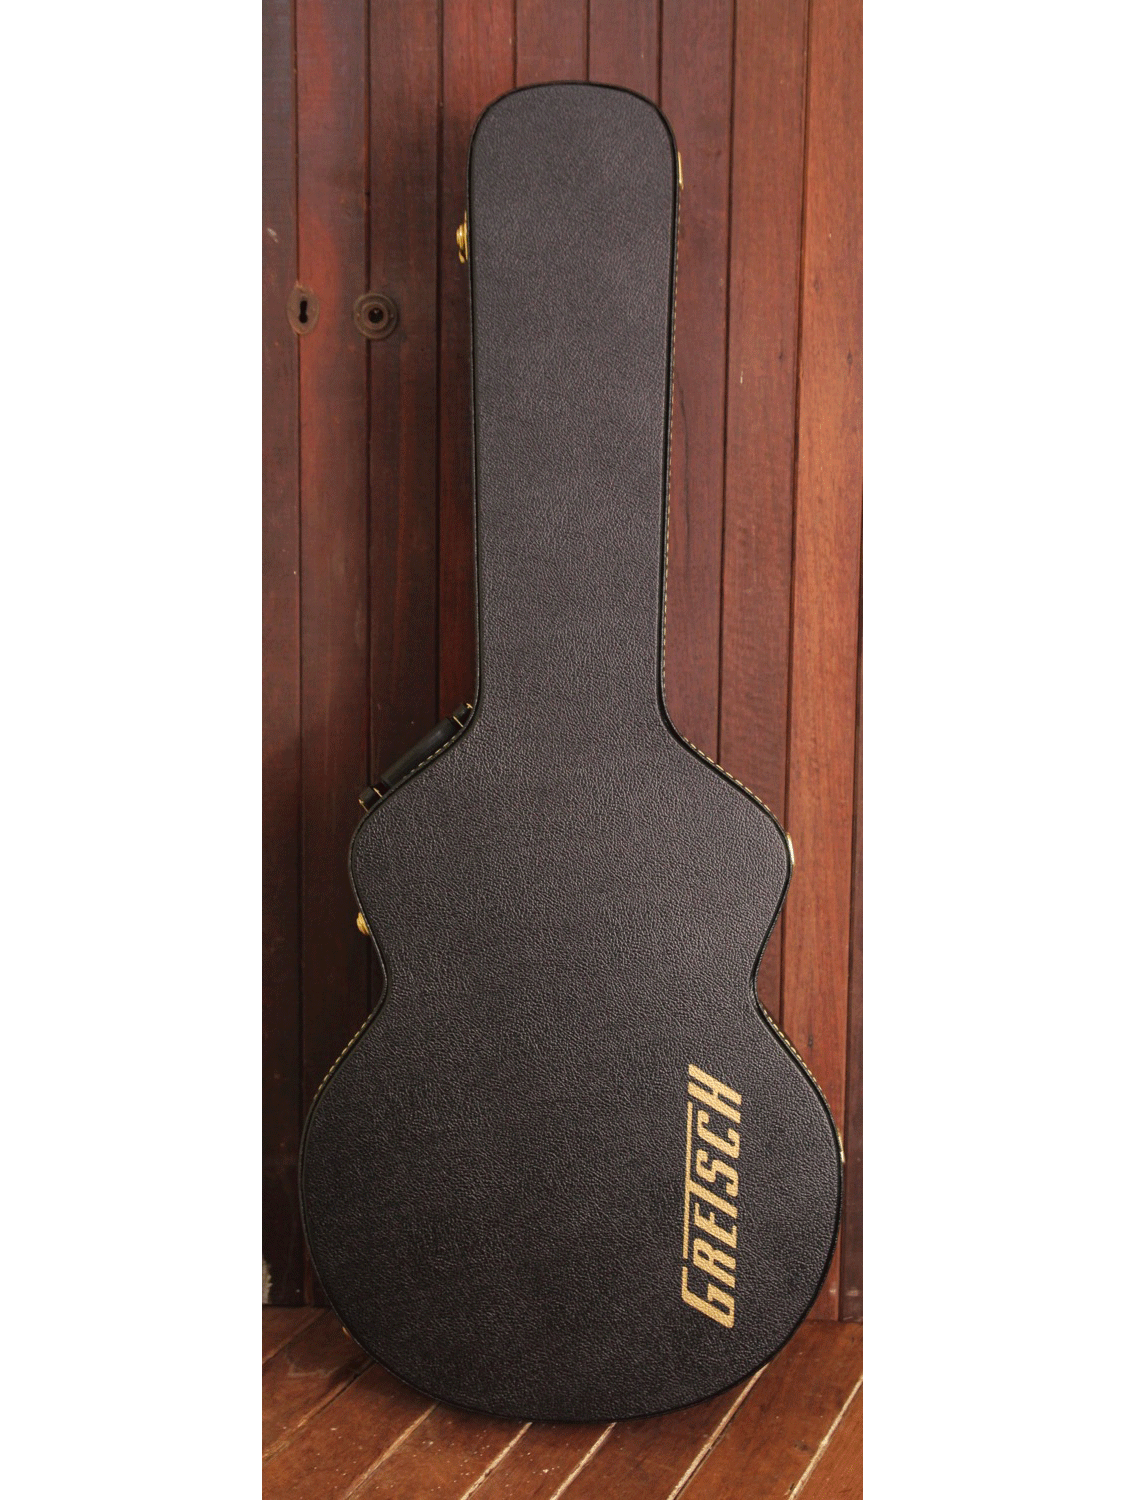 Gretsch Hollowbody Hardshell Case - The Rock Inn - 1